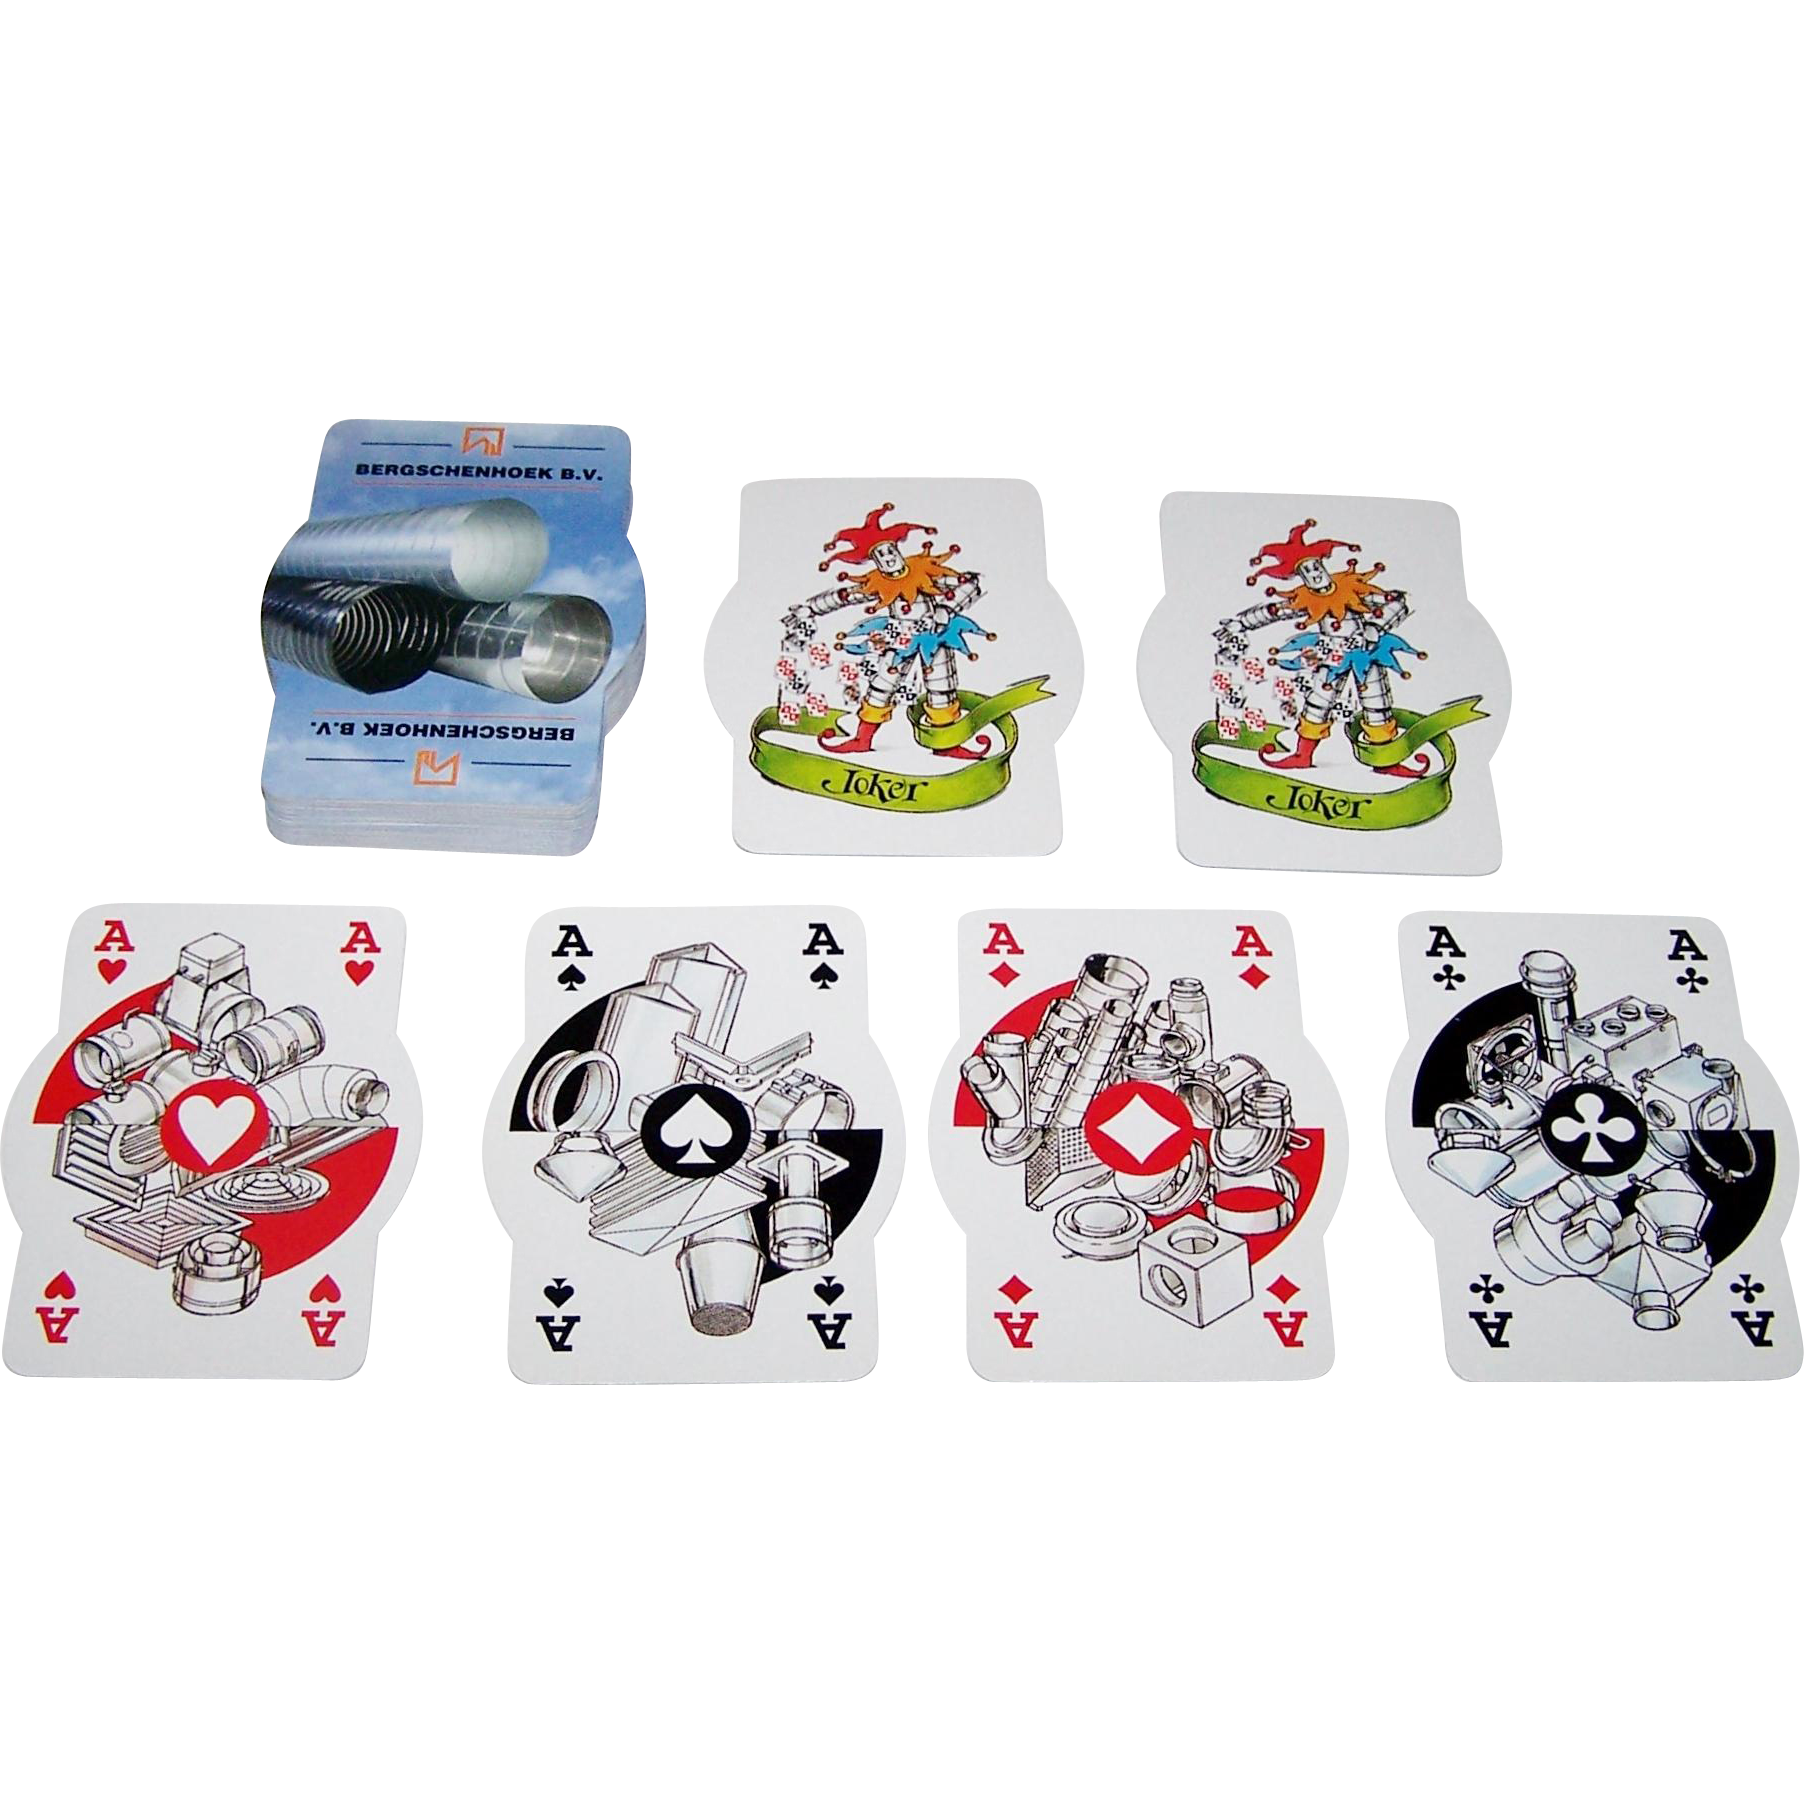 "Drukkerij Twigt ""Bergschenhoek"" Novelty Advertising Playing Cards, Jan de Borst Designs, Ltd. Ed. (___/5000)"